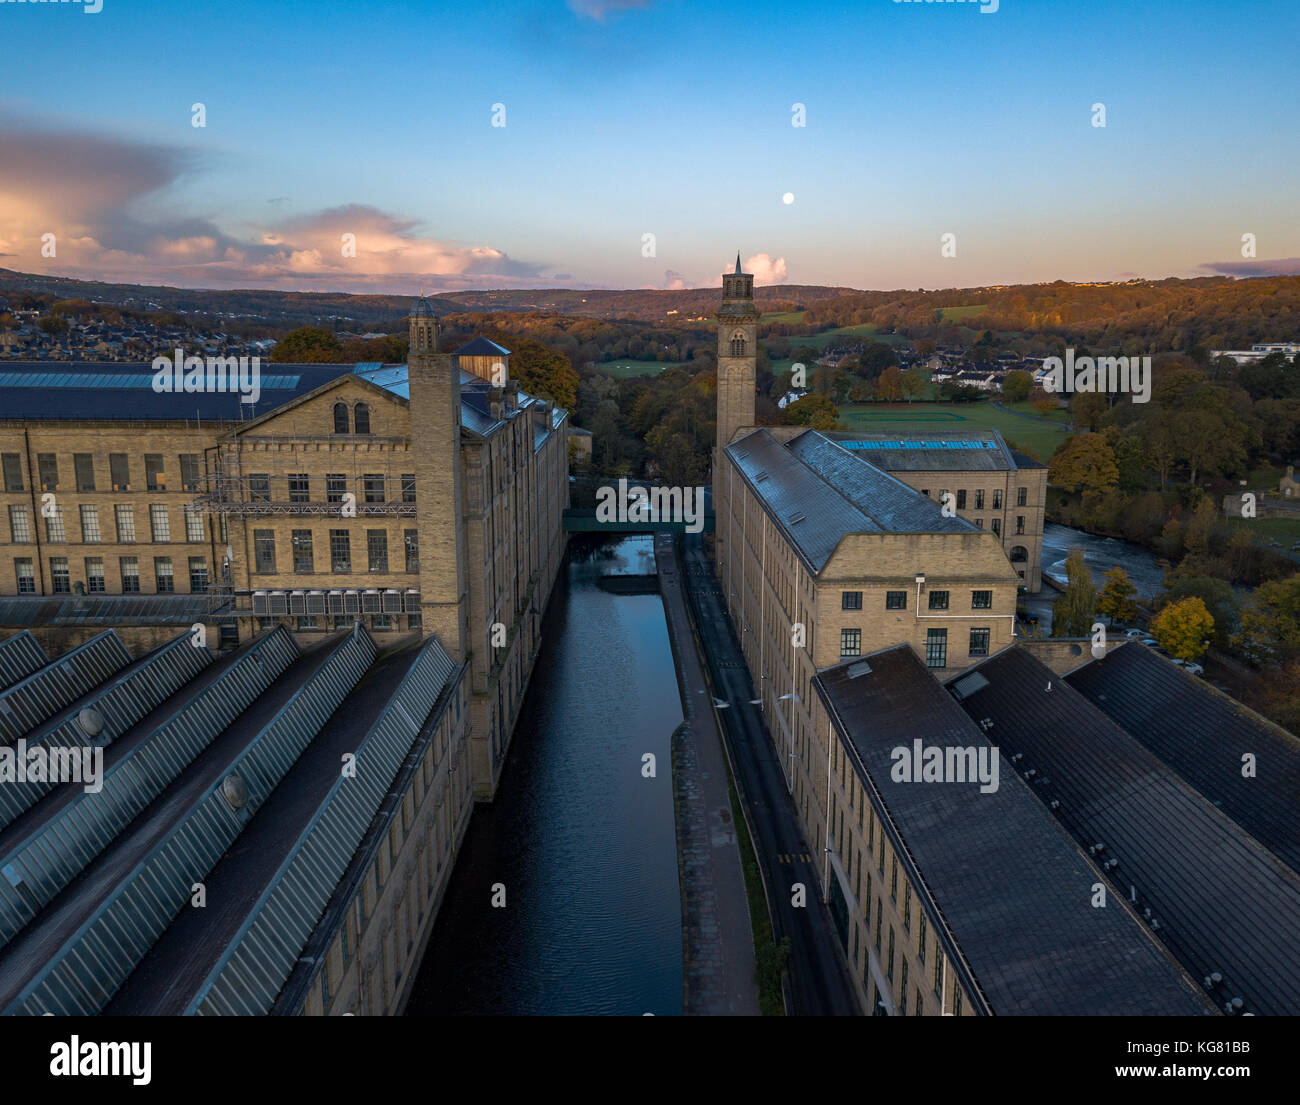 Shipley West Yorkshire Stock Photos  Shipley West Yorkshire Stock Images  Alamy